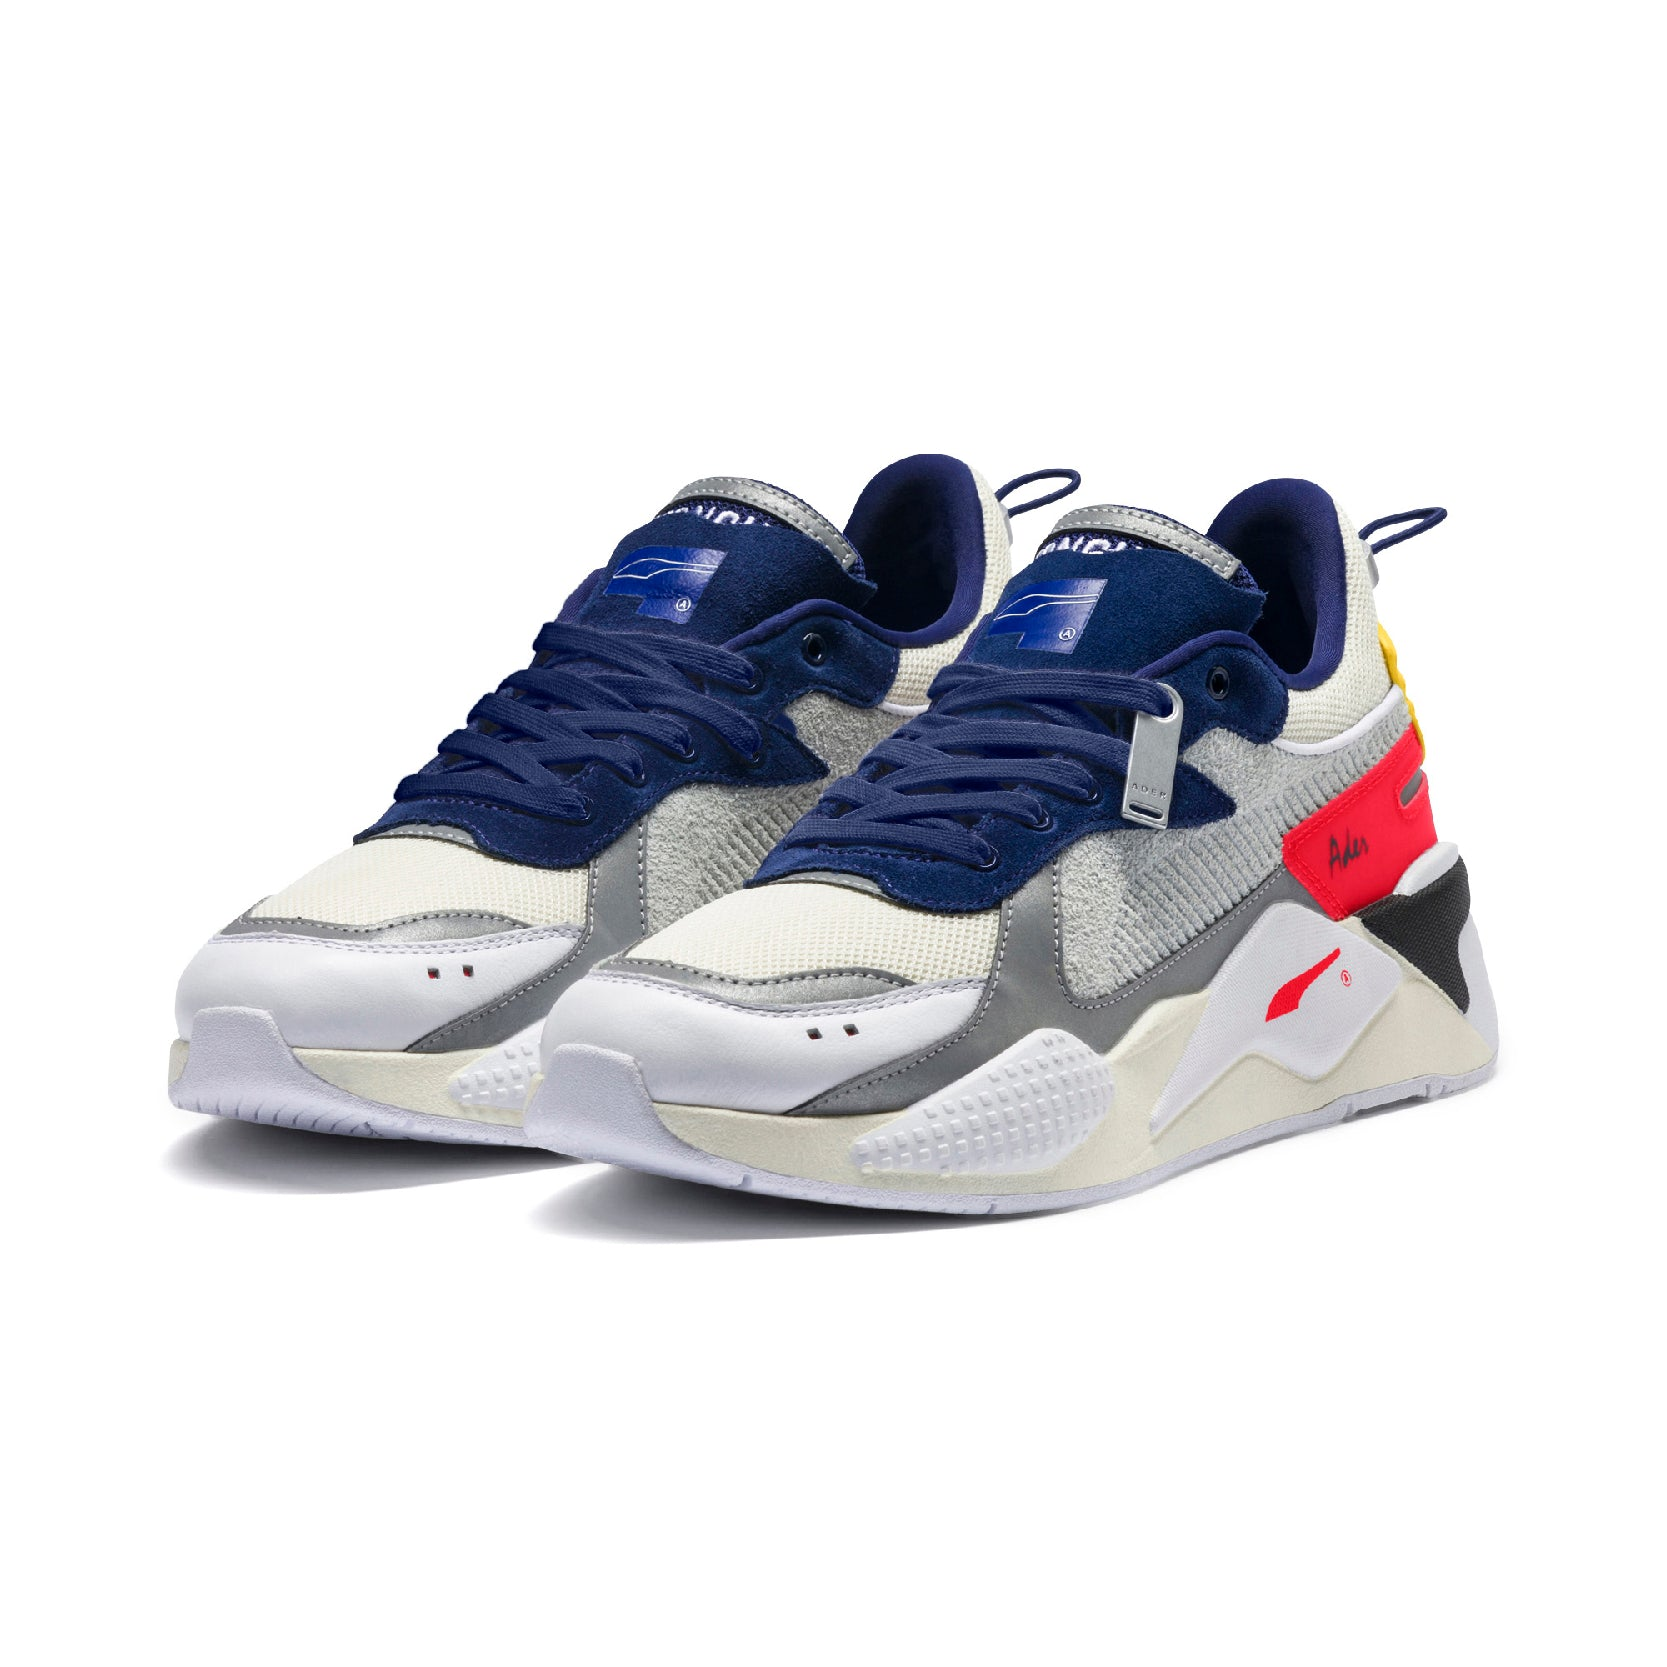 PUMA x ADER ERROR AVAILABLE 2/23